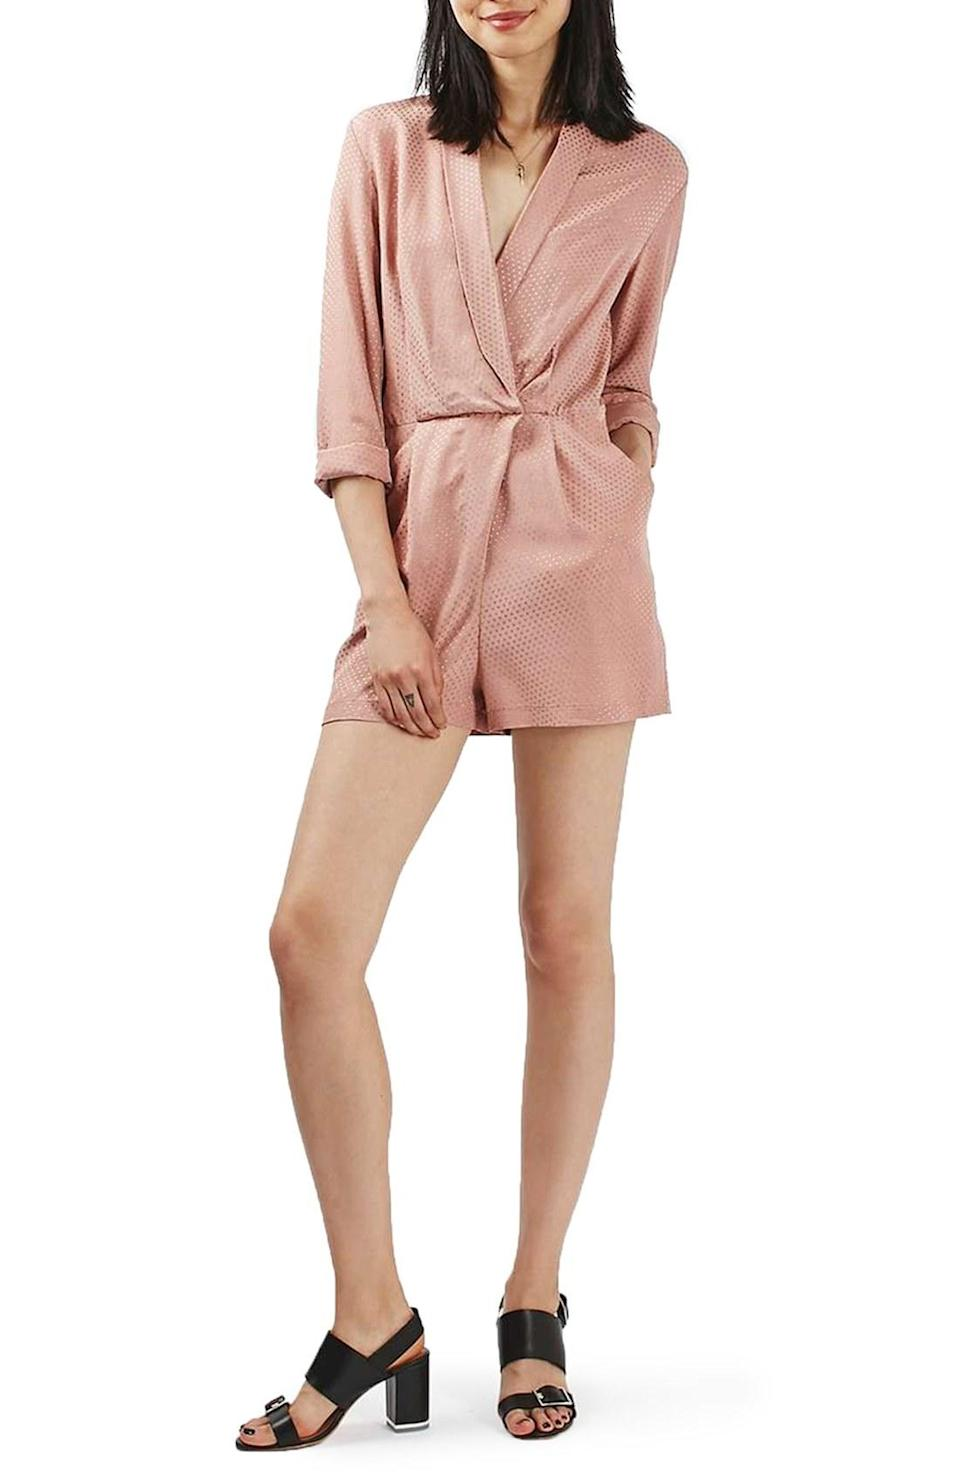 "<p>It's an amazing day when you can skip pants and throw on a romper. This style has a look that can be cute or daring. We love the pindot detail on this blush pink wrap romper</p><p><i>Topshop Pindot Wrap Playsuit, $95, <a href=""http://www.thebay.com/webapp/wcs/stores/servlet/en/thebay/womens-apparel/womens-pants-jumpsuits-rompers/pindot-wrap-playsuit-0001-36p14kbls--24"" rel=""nofollow noopener"" target=""_blank"" data-ylk=""slk:thebay.com"" class=""link rapid-noclick-resp"">thebay.com</a></i></p>"